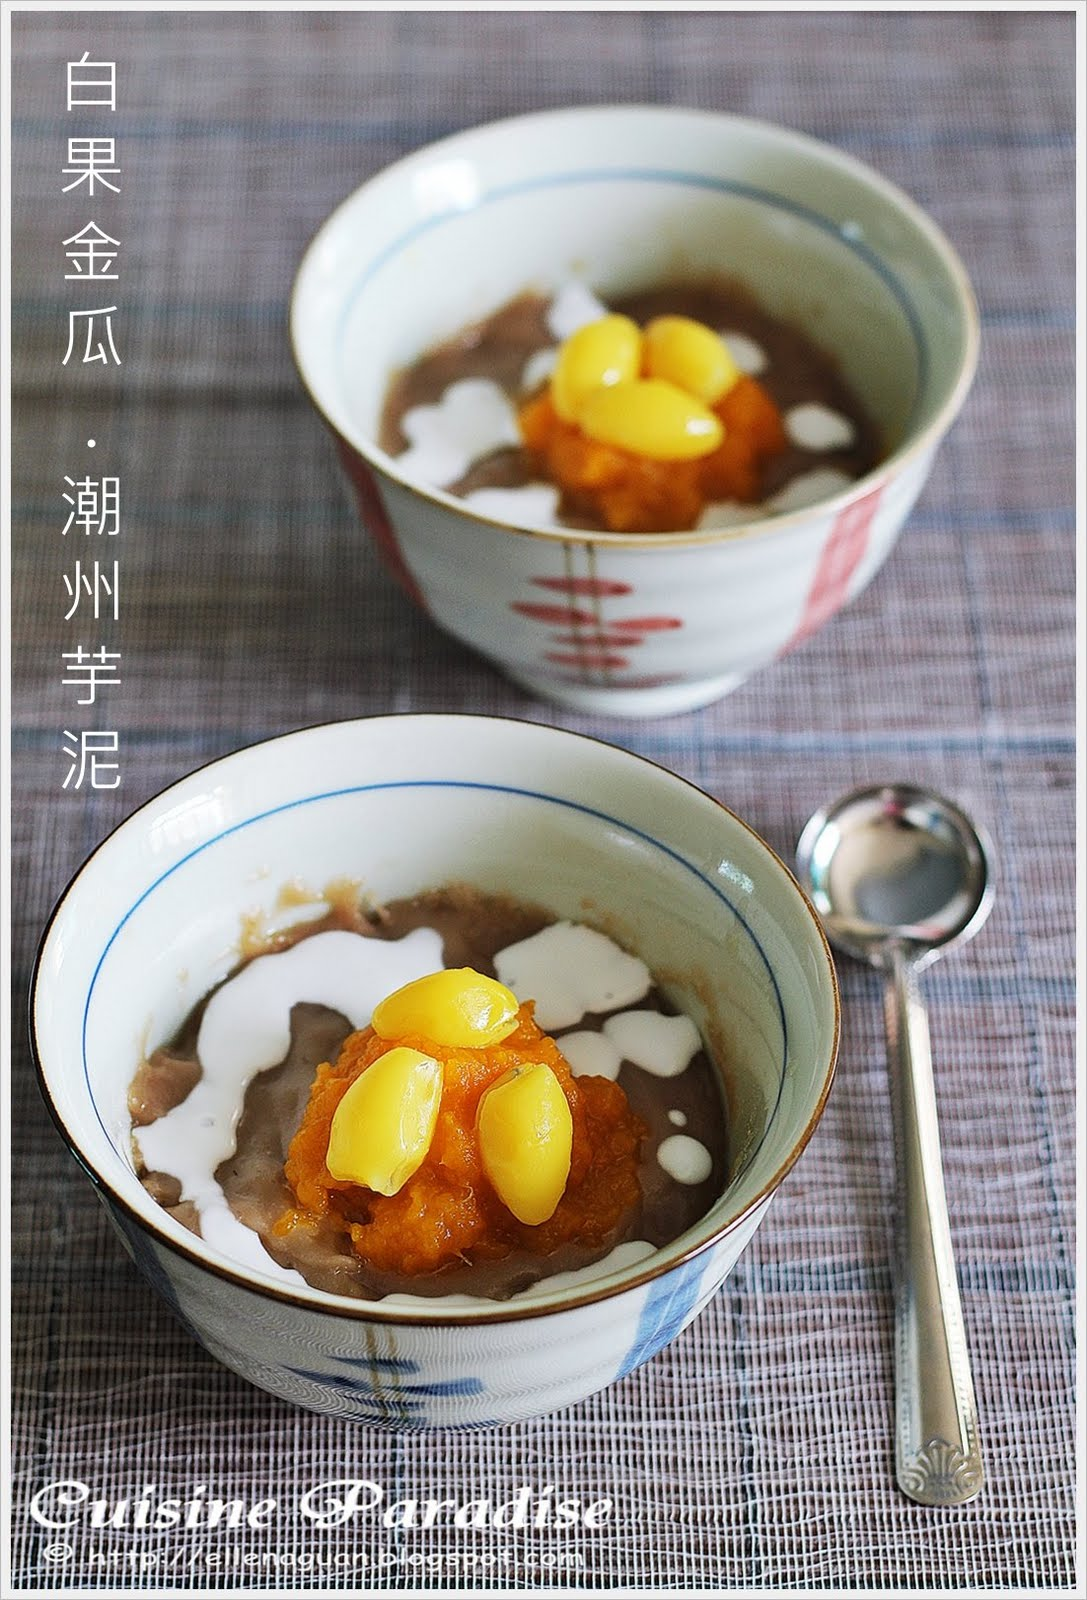 ... Recipes, Reviews And Travel: [Dessert]Orr Nee With Gingko Nut And